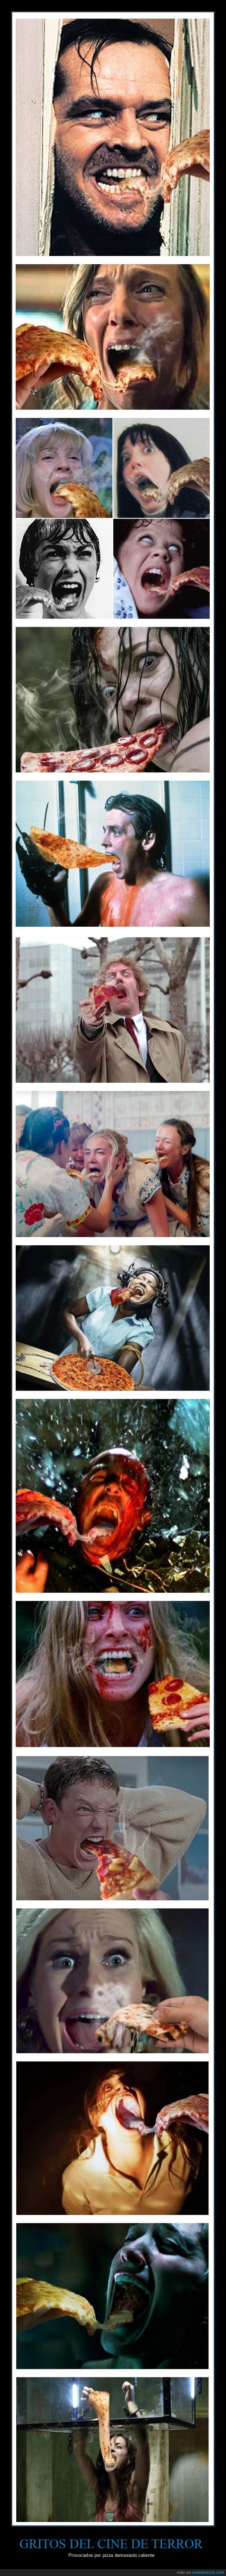 caliente,cine,gritos,photoshop,pizza,terror